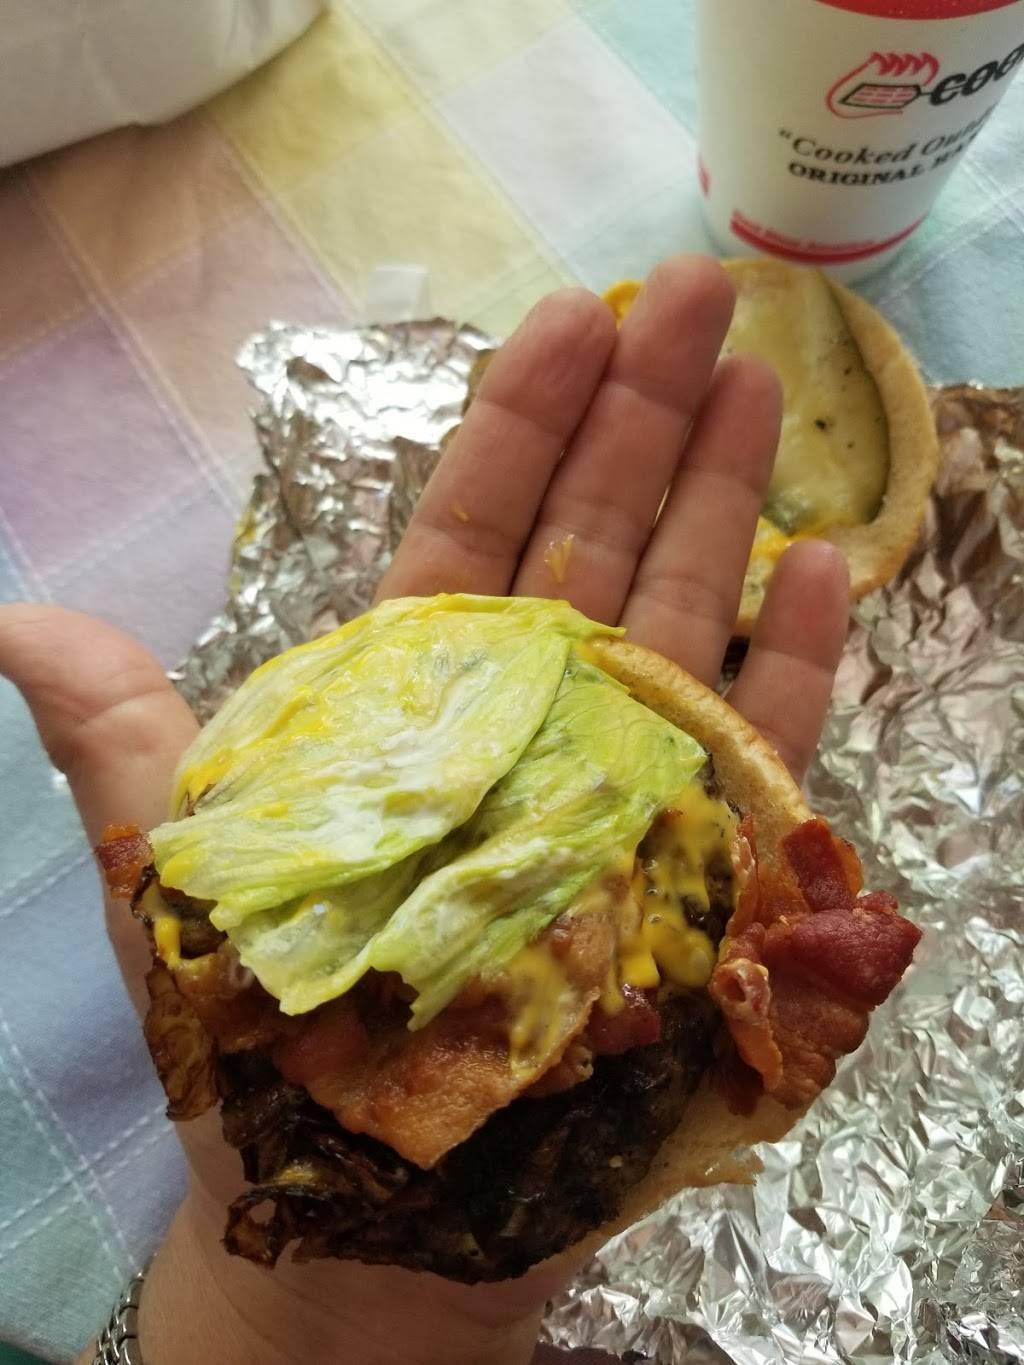 Cook Out | restaurant | 8475 Dorchester Rd, North Charleston, SC 29420, USA | 8435527784 OR +1 843-552-7784